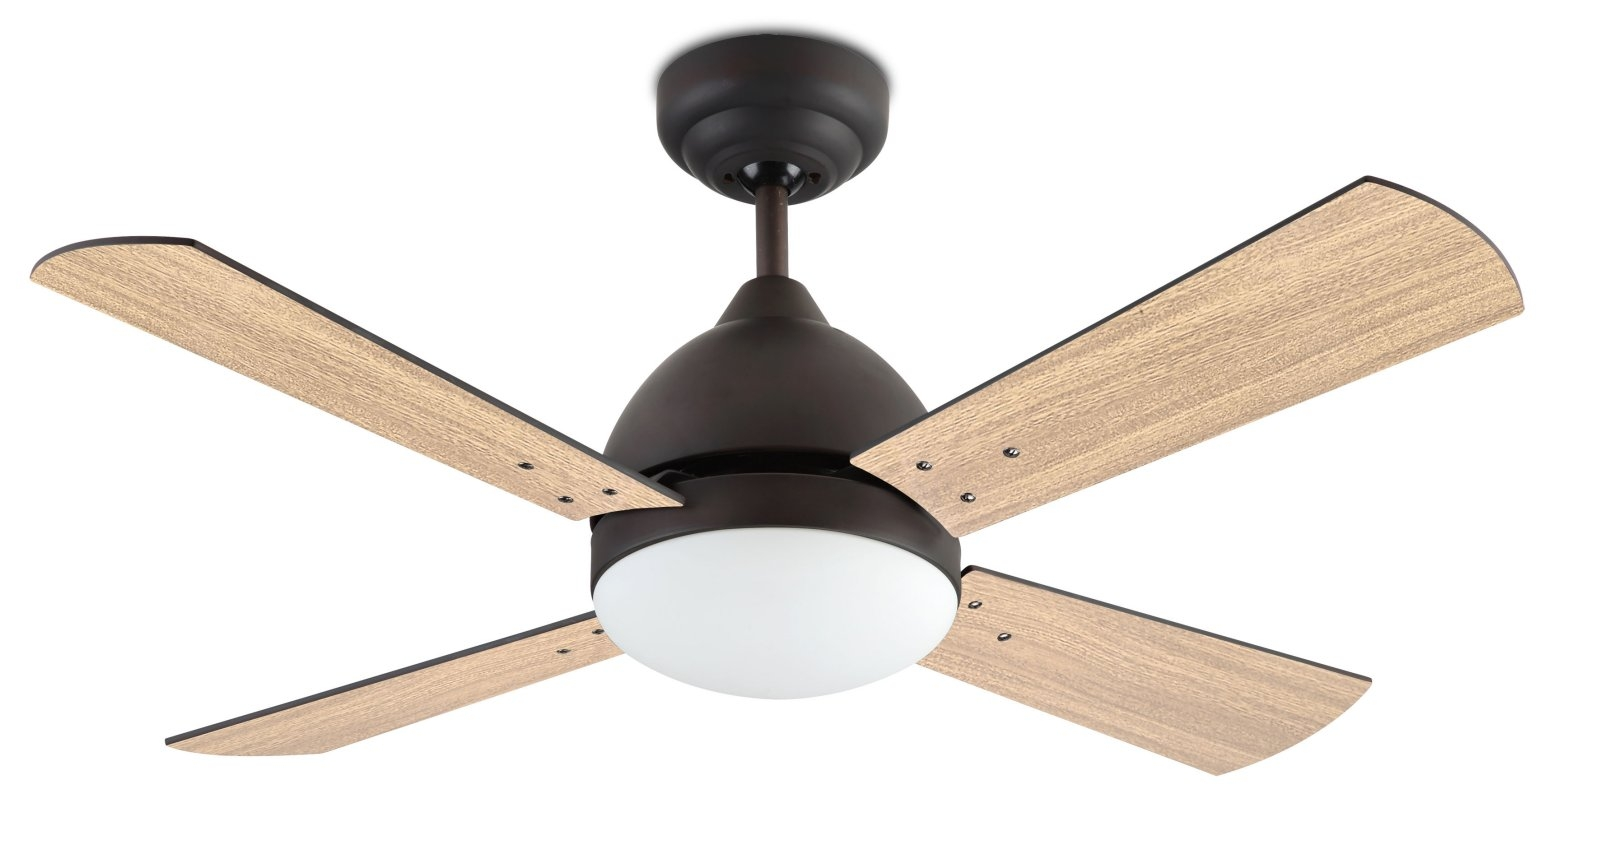 Large Ceiling Fan Complete with Light D:1066mm